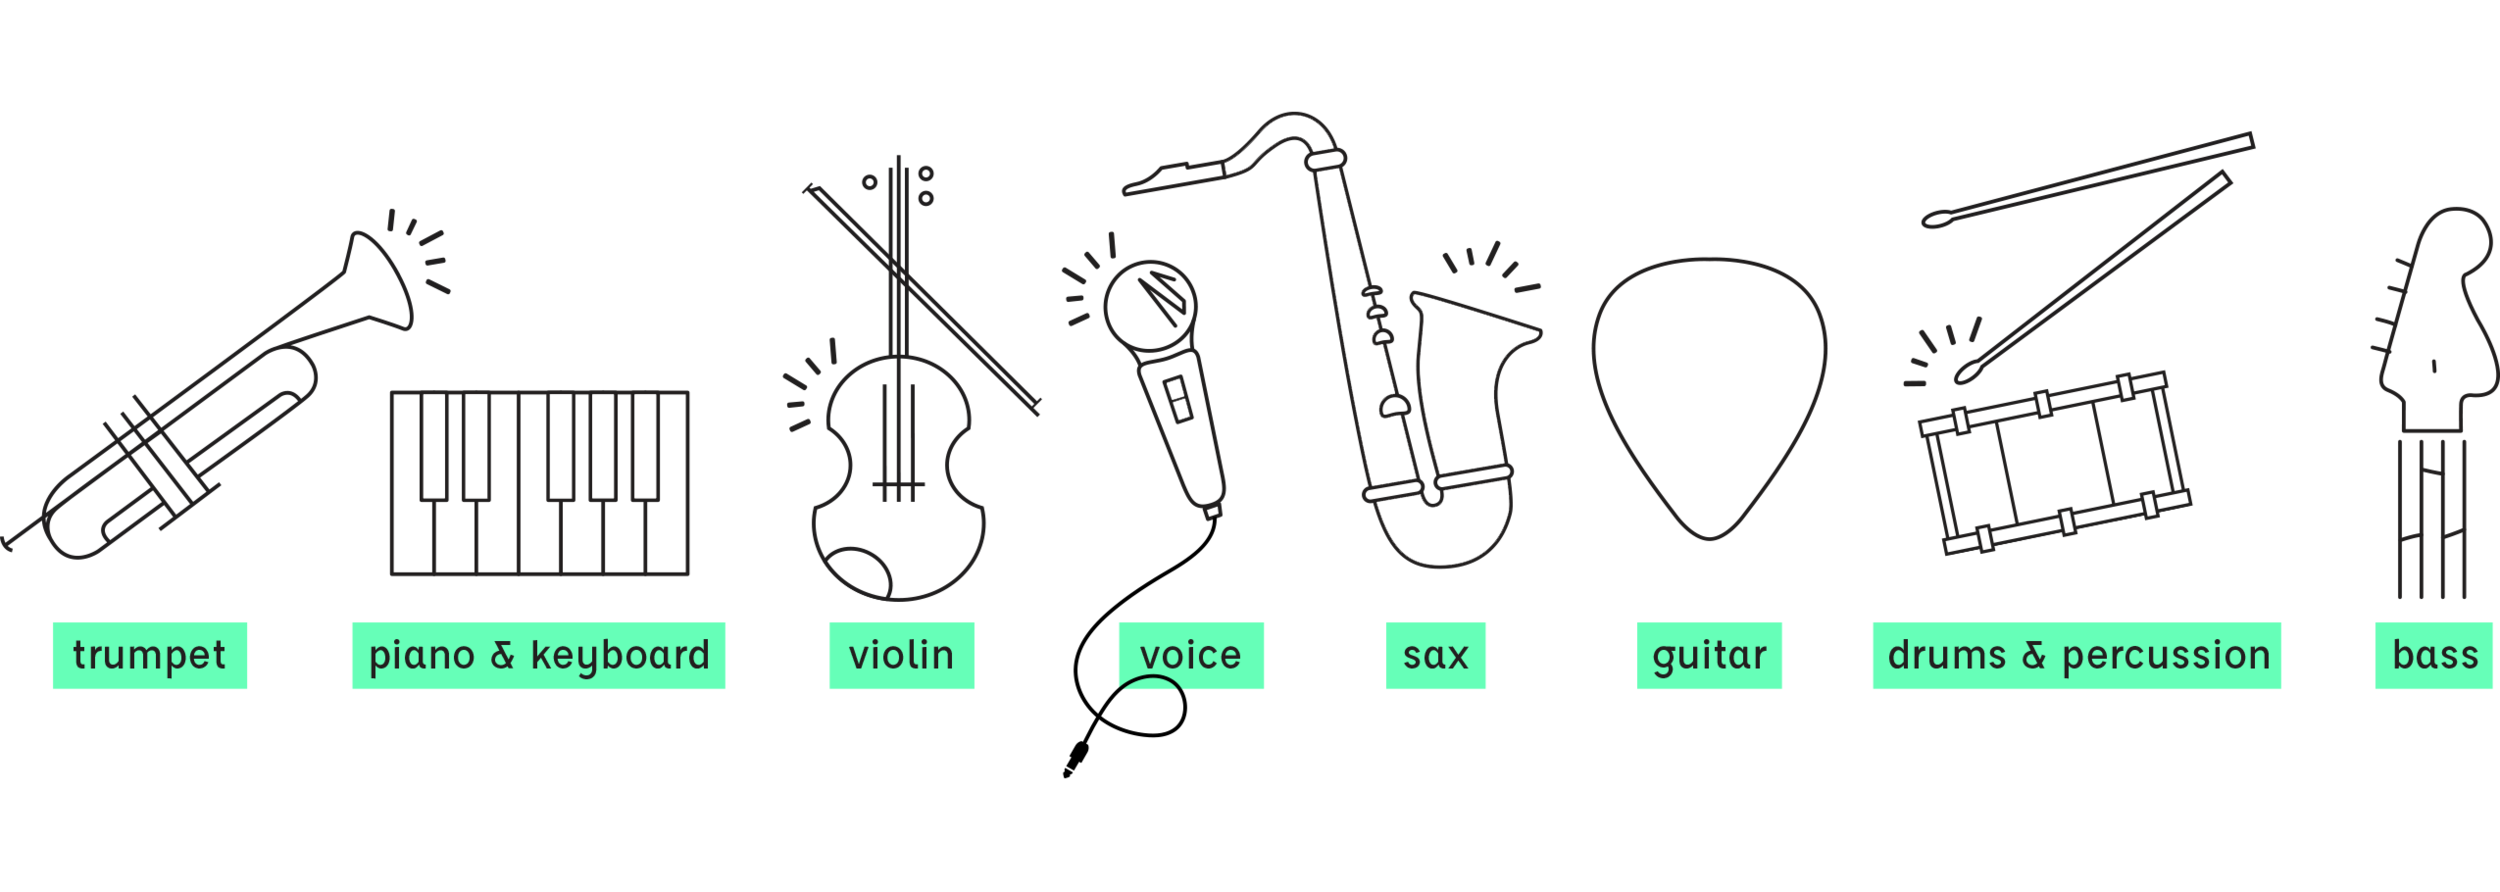 trumpet piano violin voice sax guitar drums bass.png